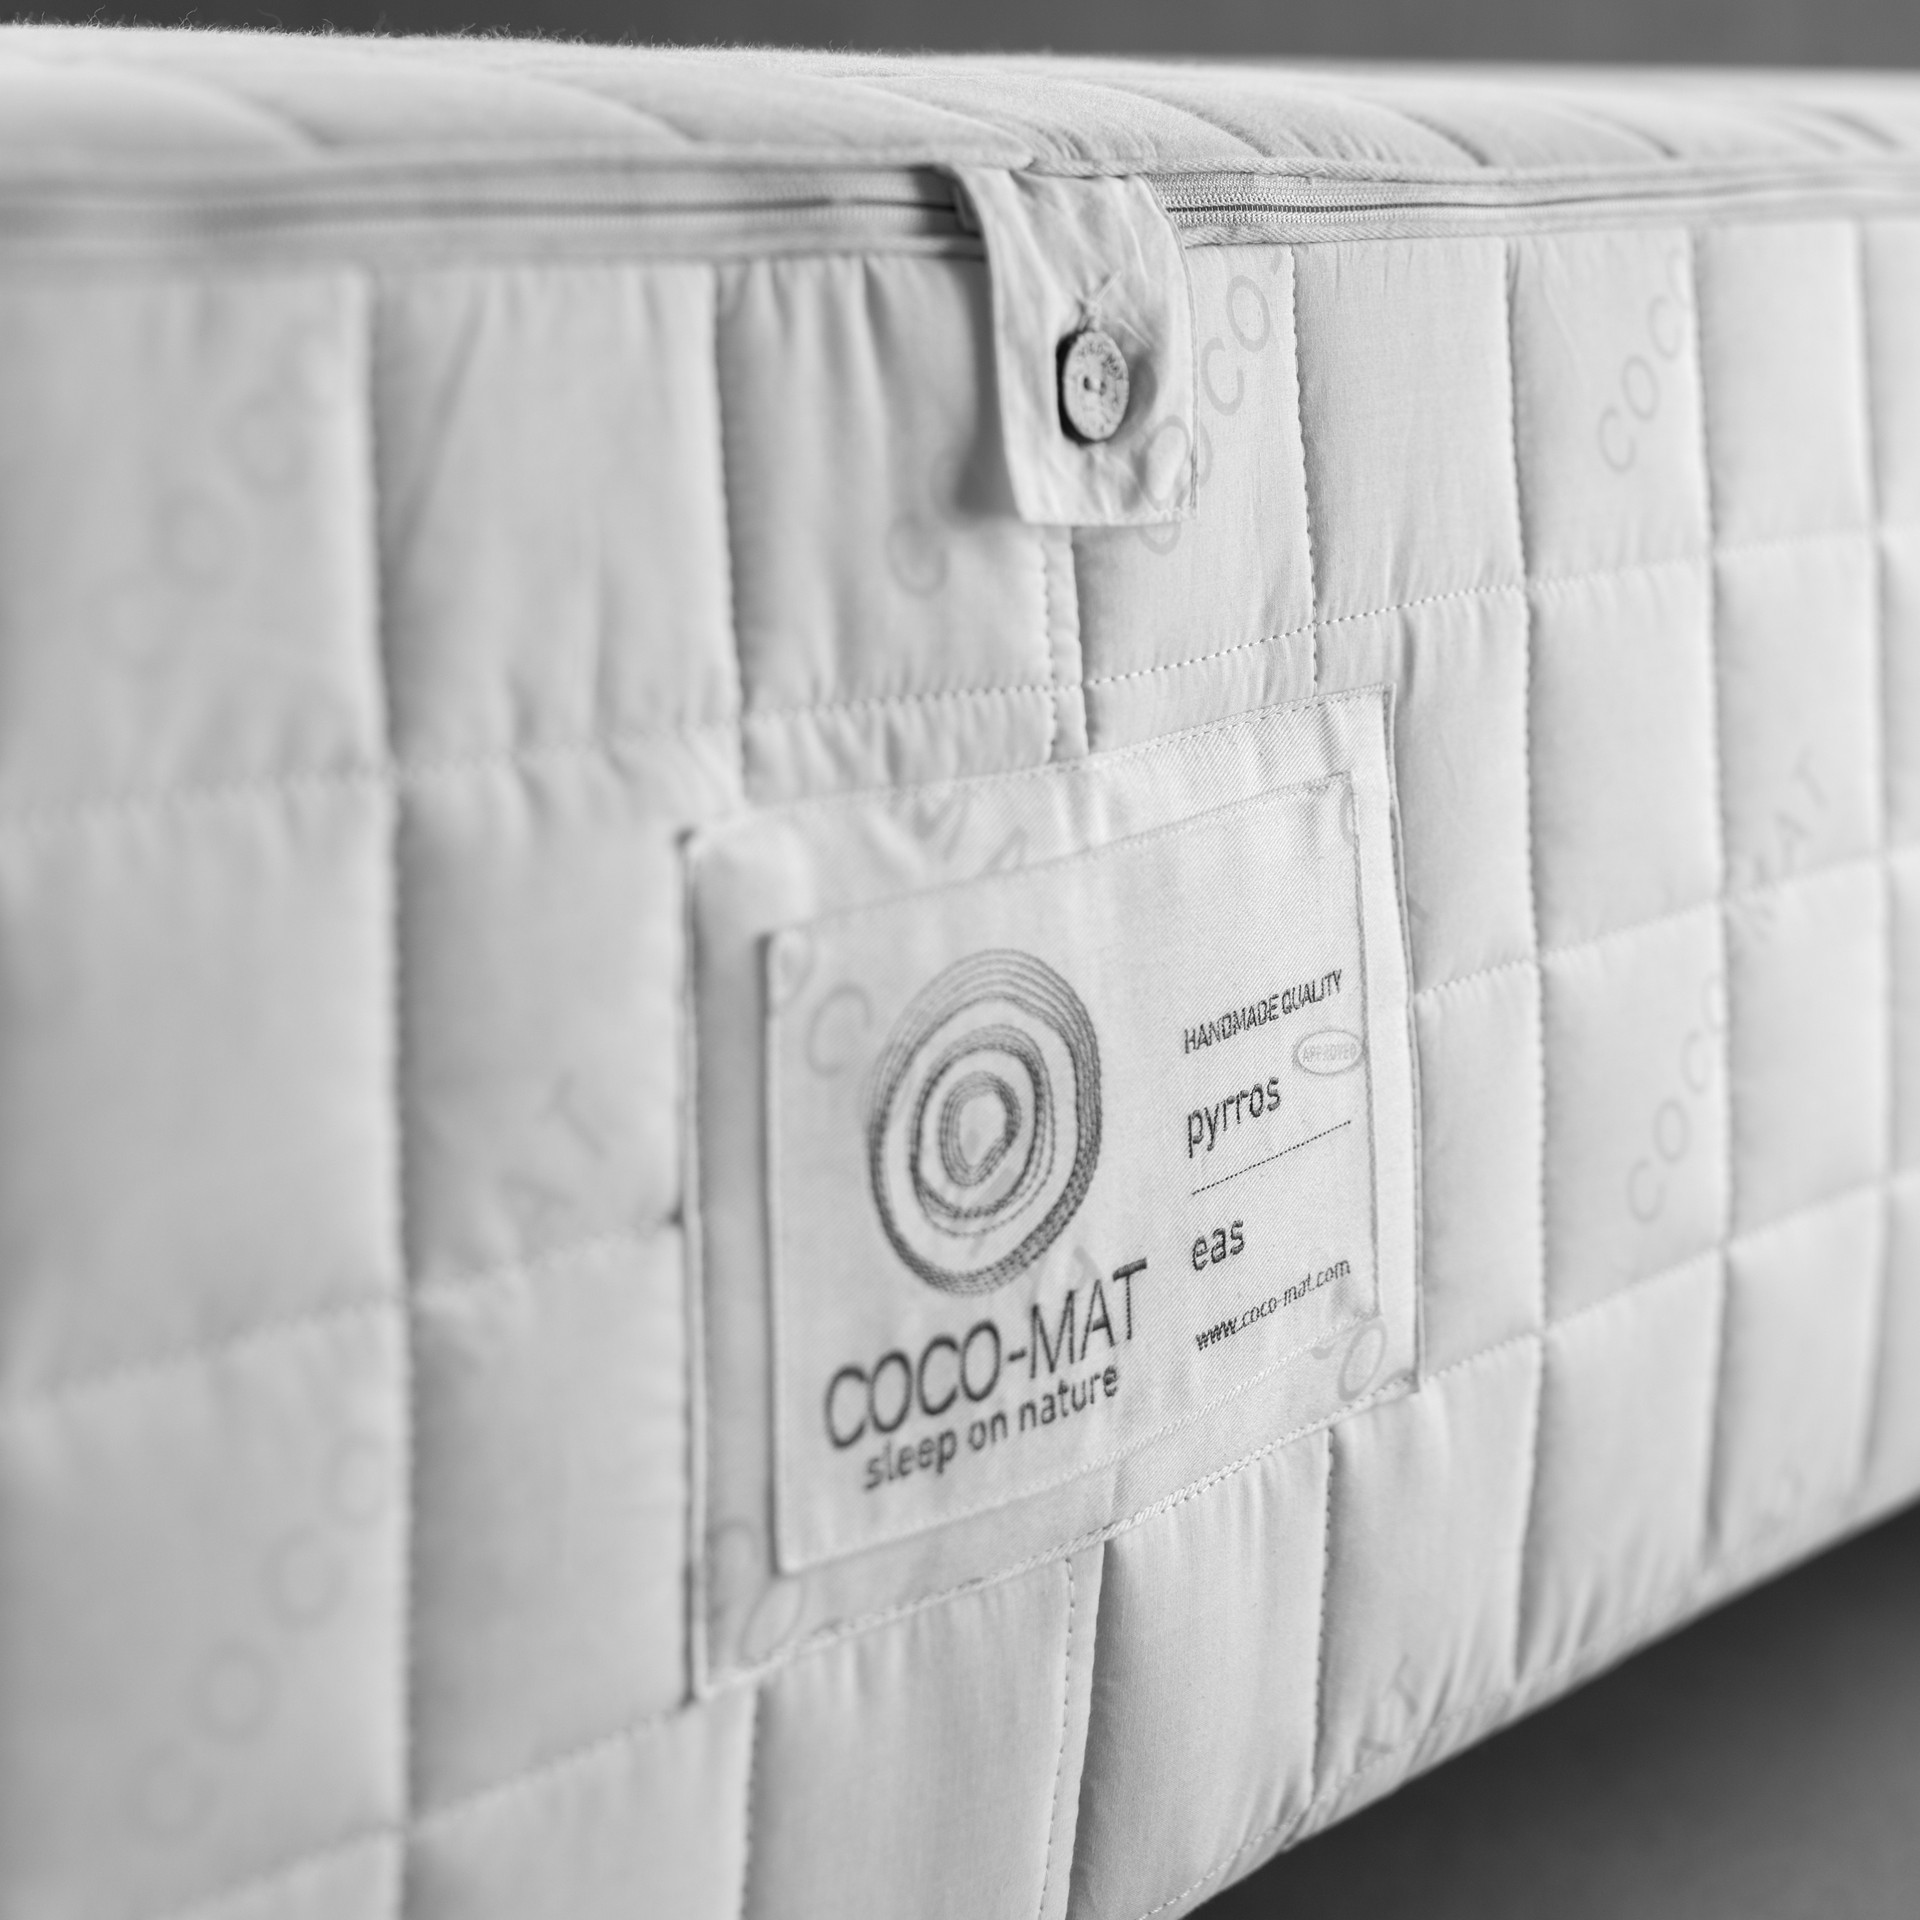 Sommier-matelas Pyrros